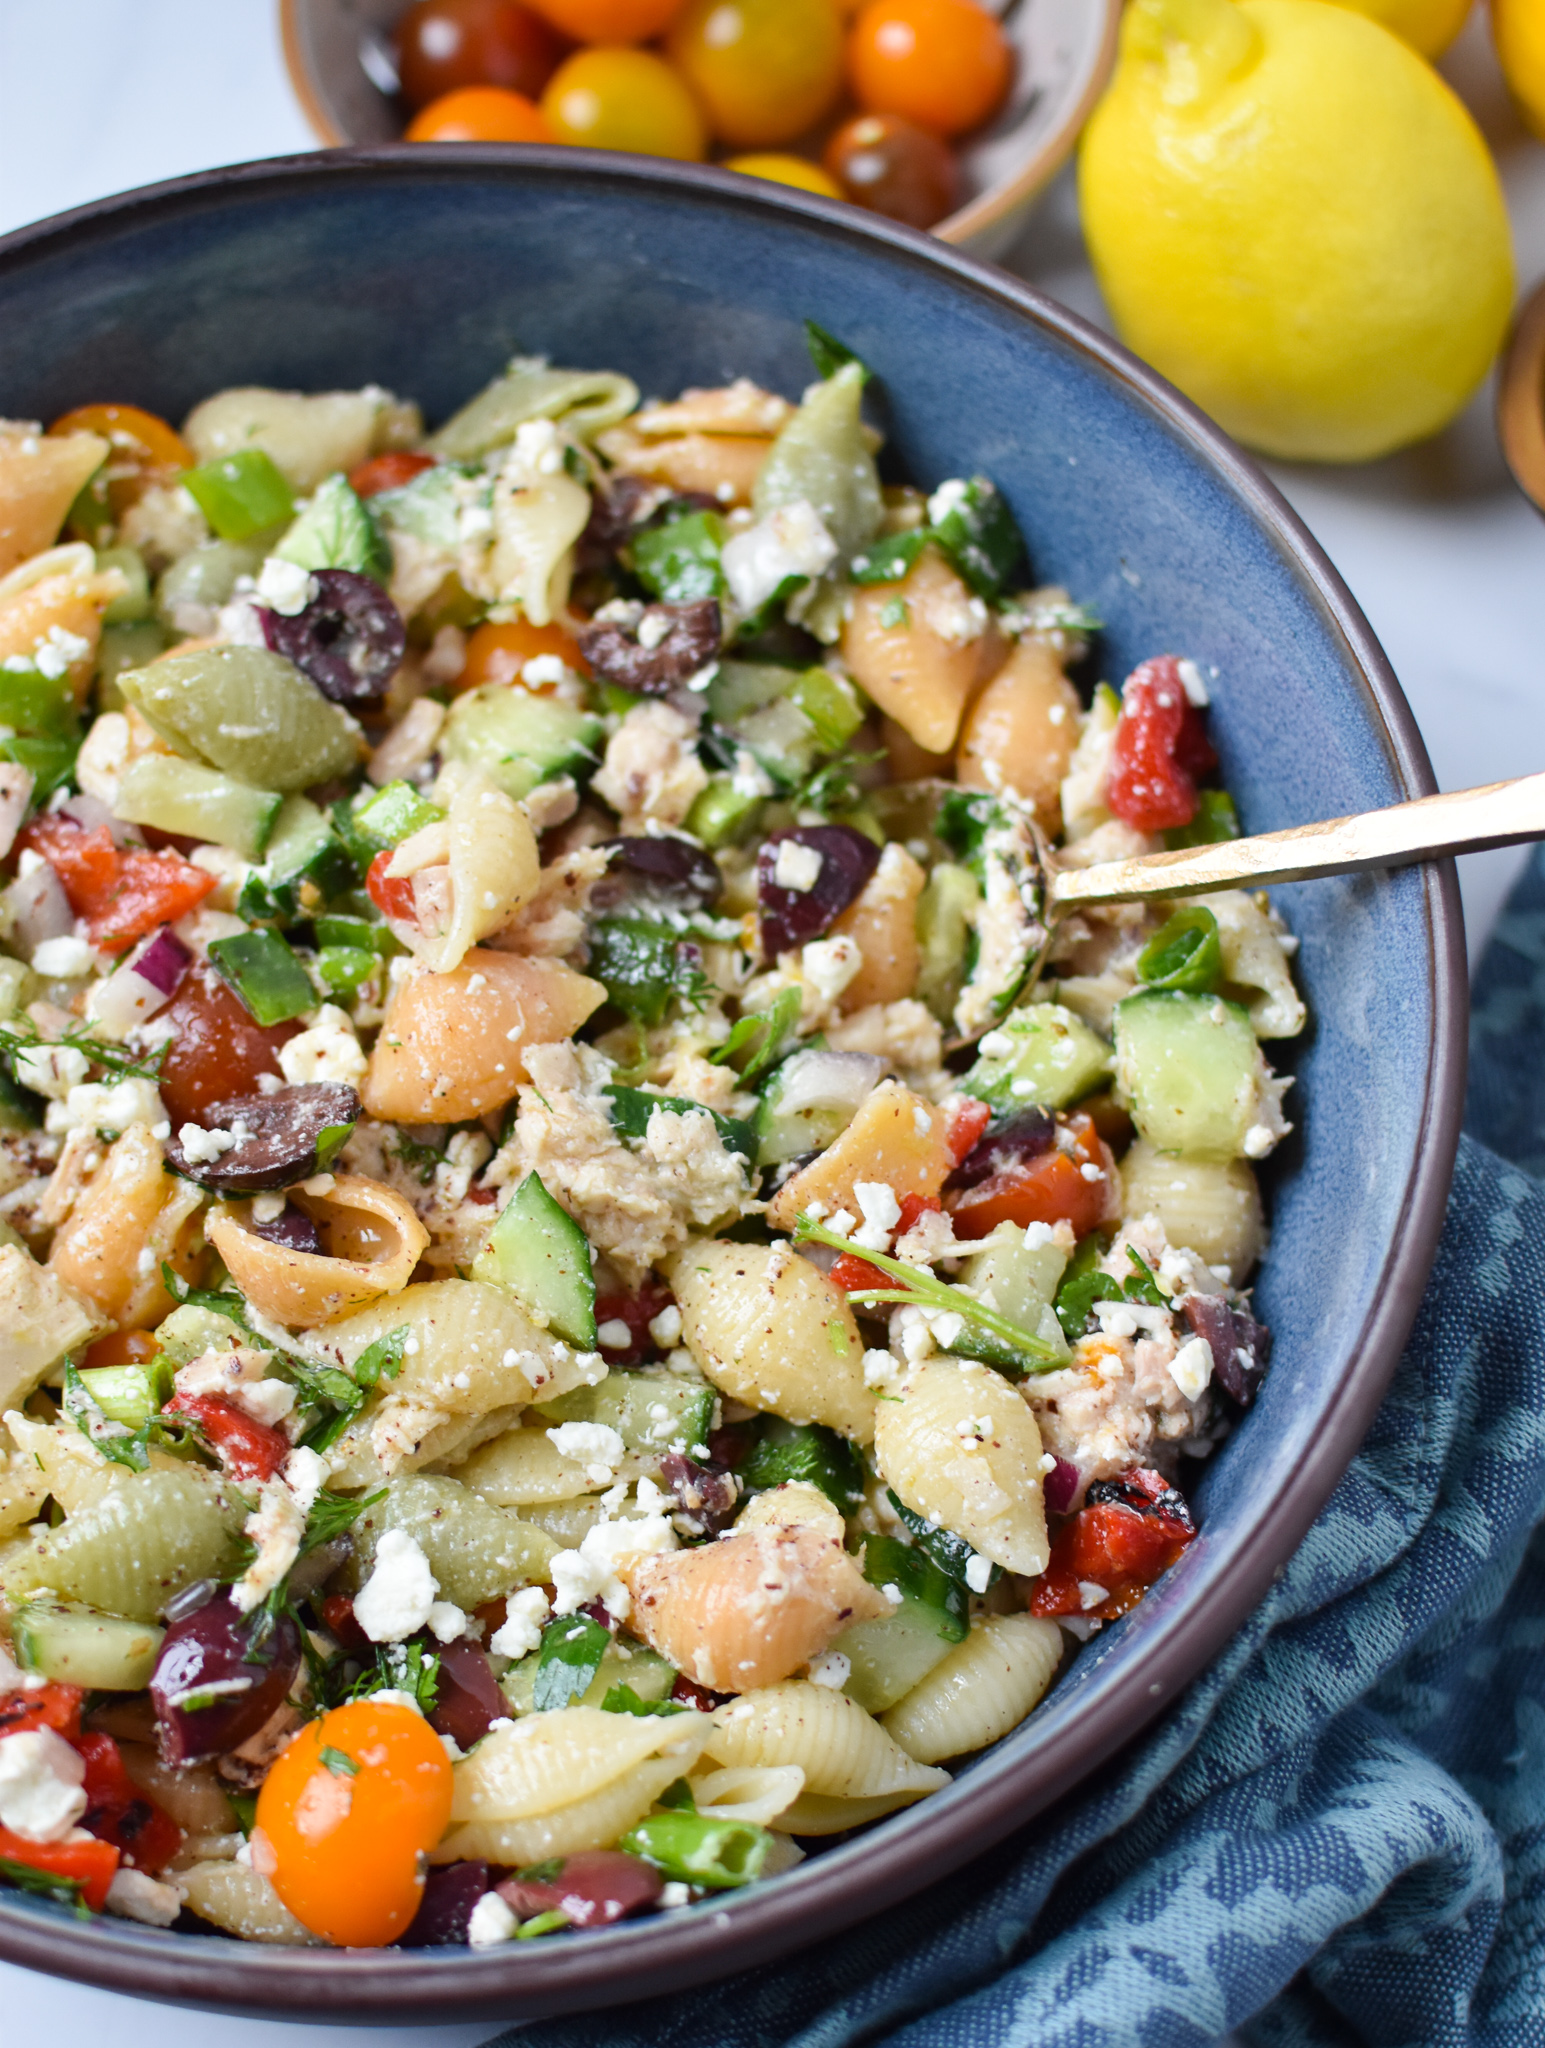 Mediterranean Tuna Pasta Salad in a blue bowl.